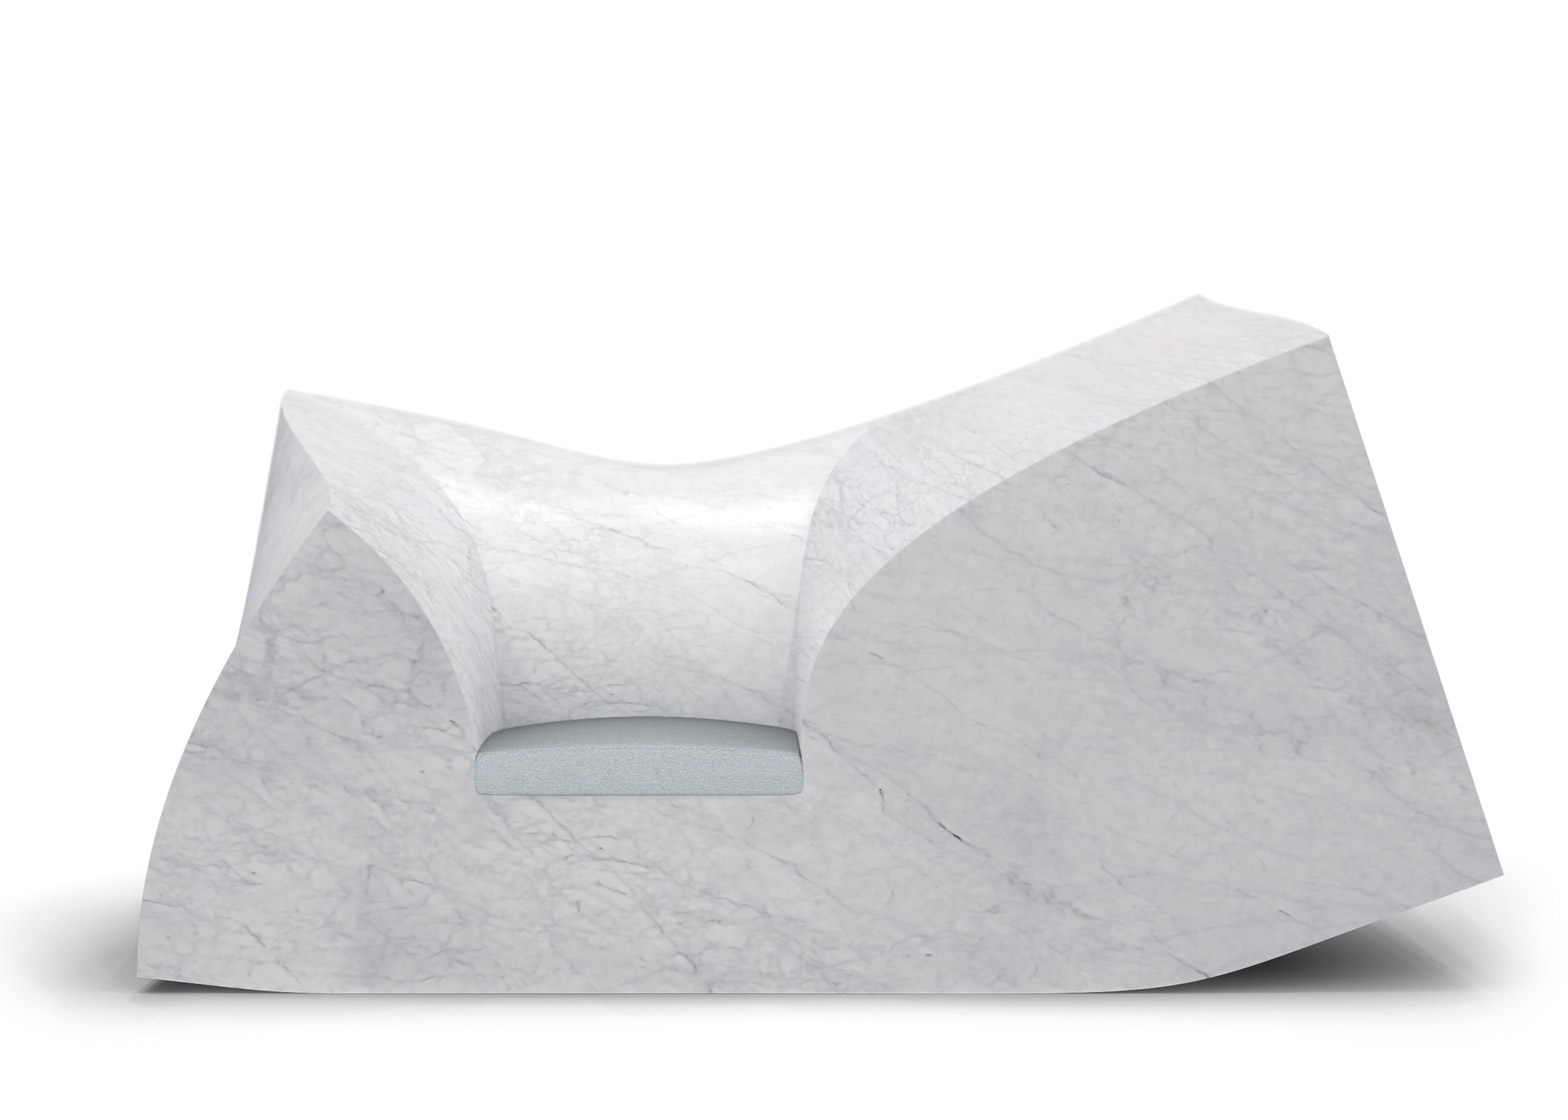 Paul Cocksedge's Marble couch for Moooi